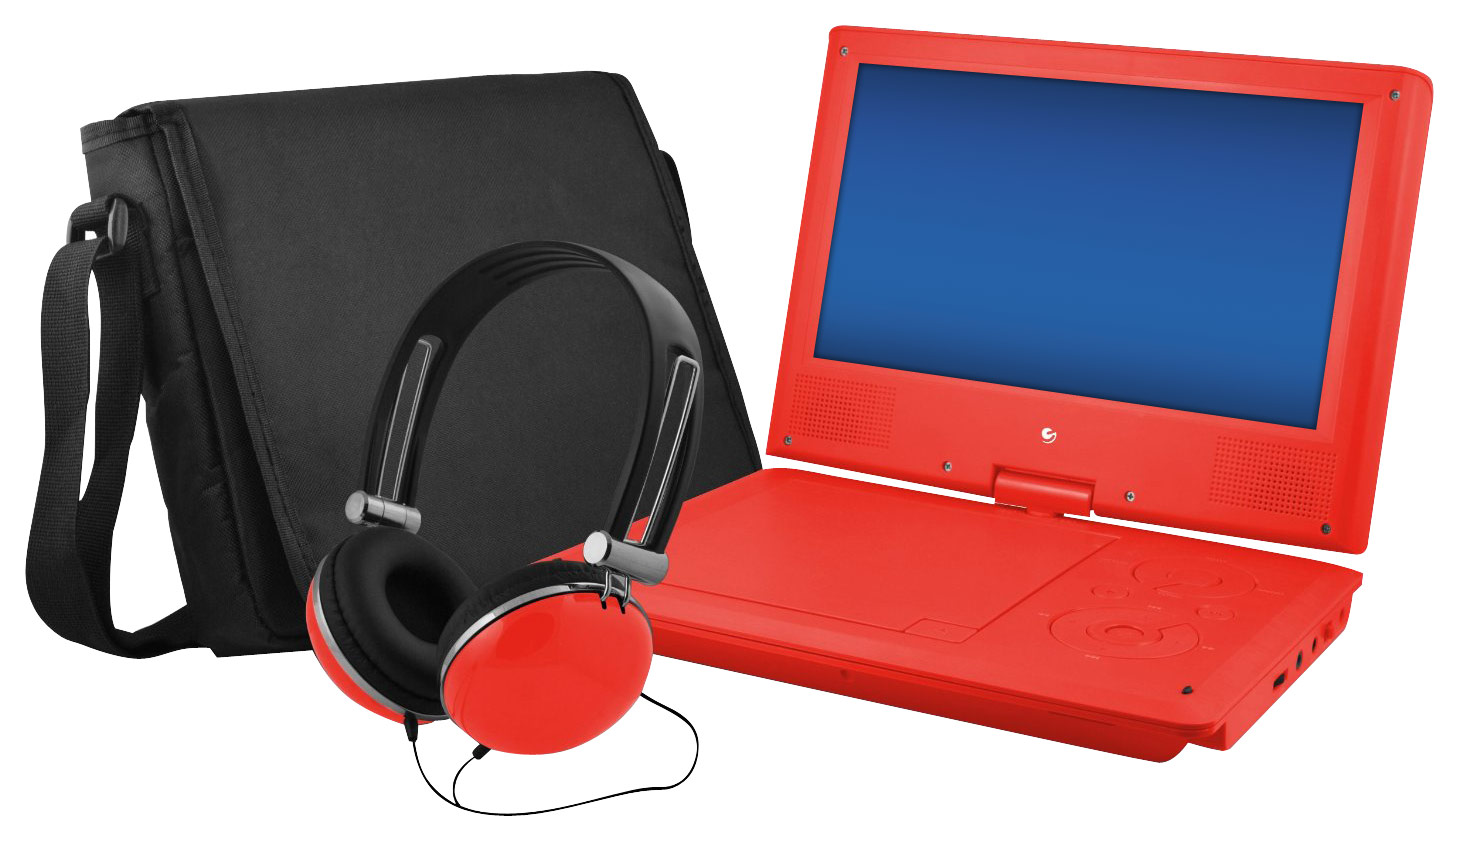 Bodacious Ematic Portable Dvd Player Swivel Screen Red Larger Front Sylvania Portable Dvd Player Black Buy Portable Dvd Player Toddler baby Portable Dvd Player For Kids